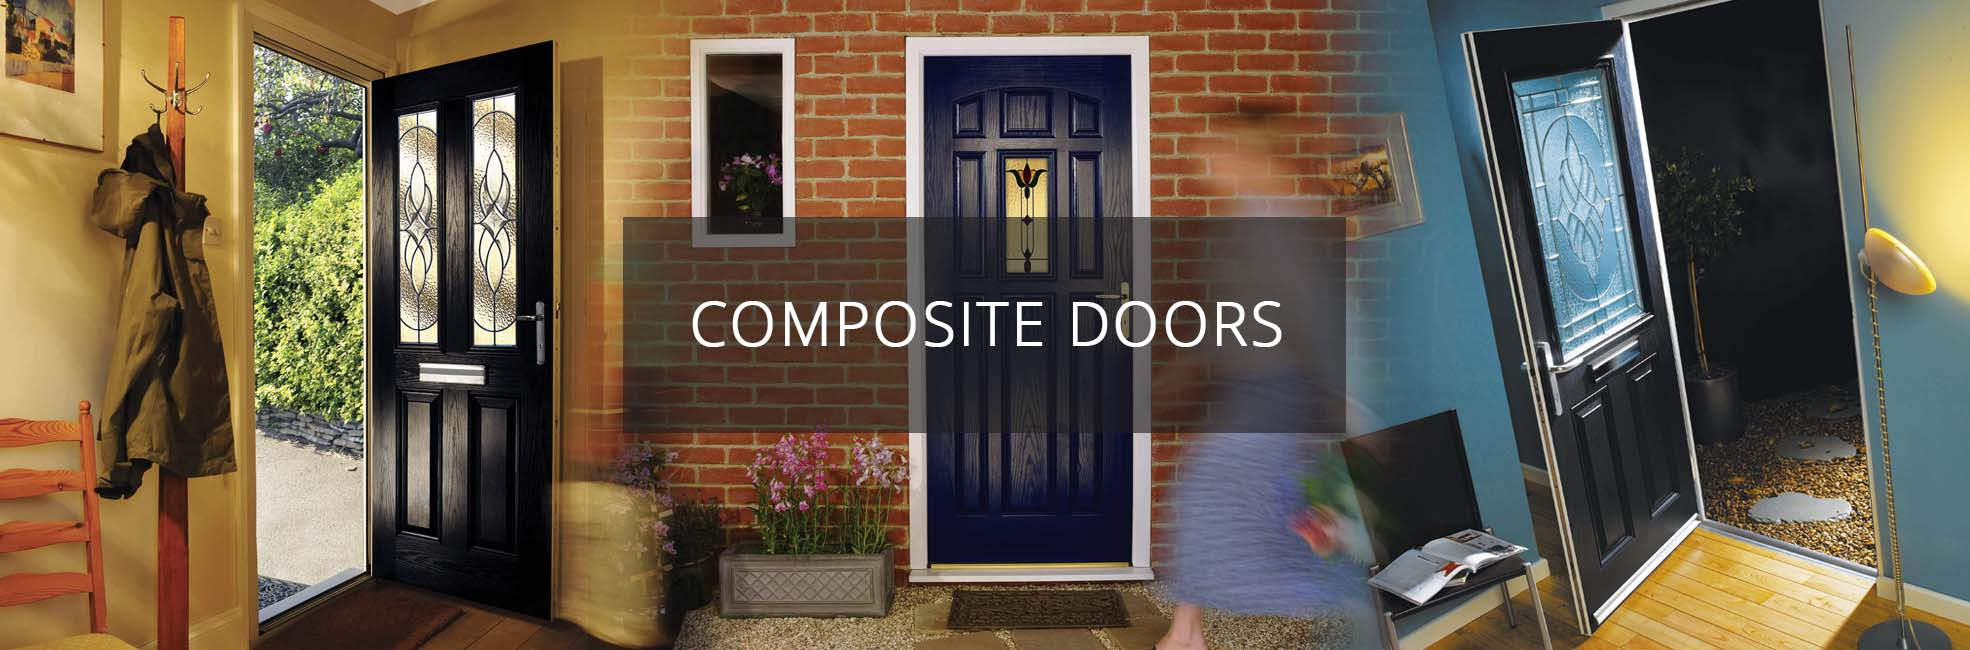 Composite Doors Northampton